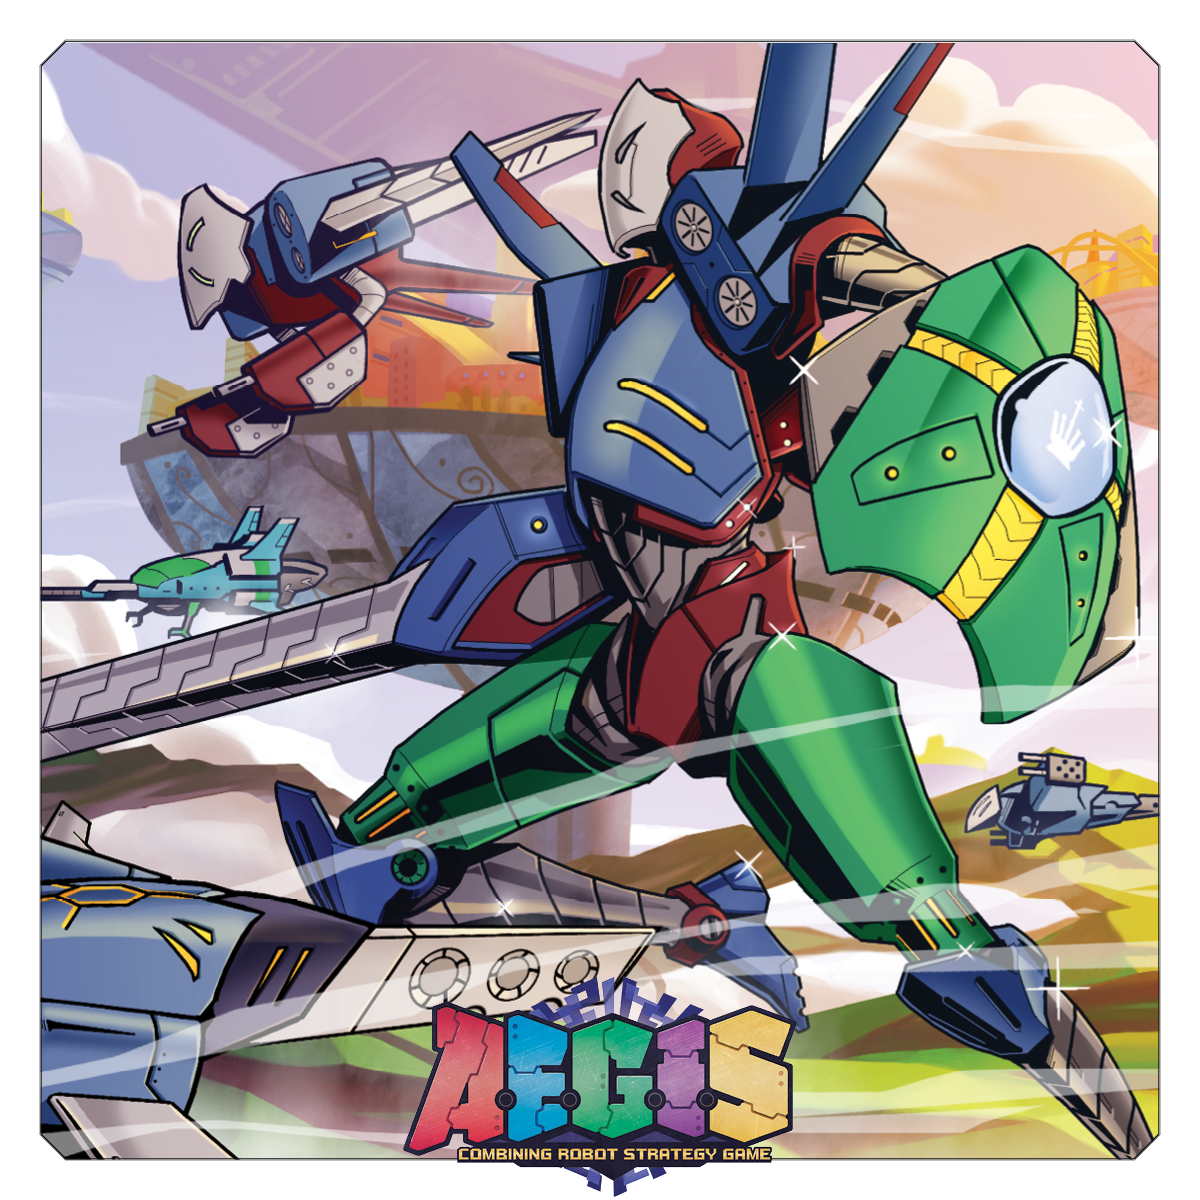 aegis-press-images_3